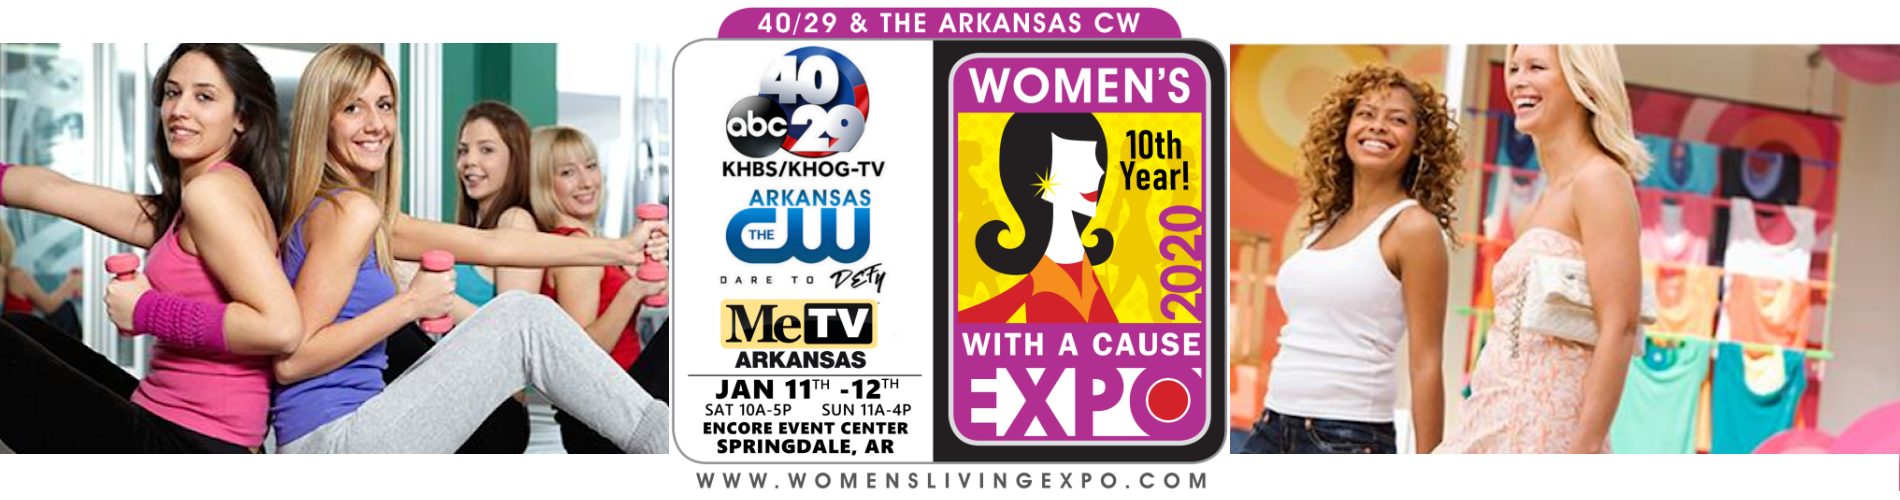 40/29 Women's Living Expo